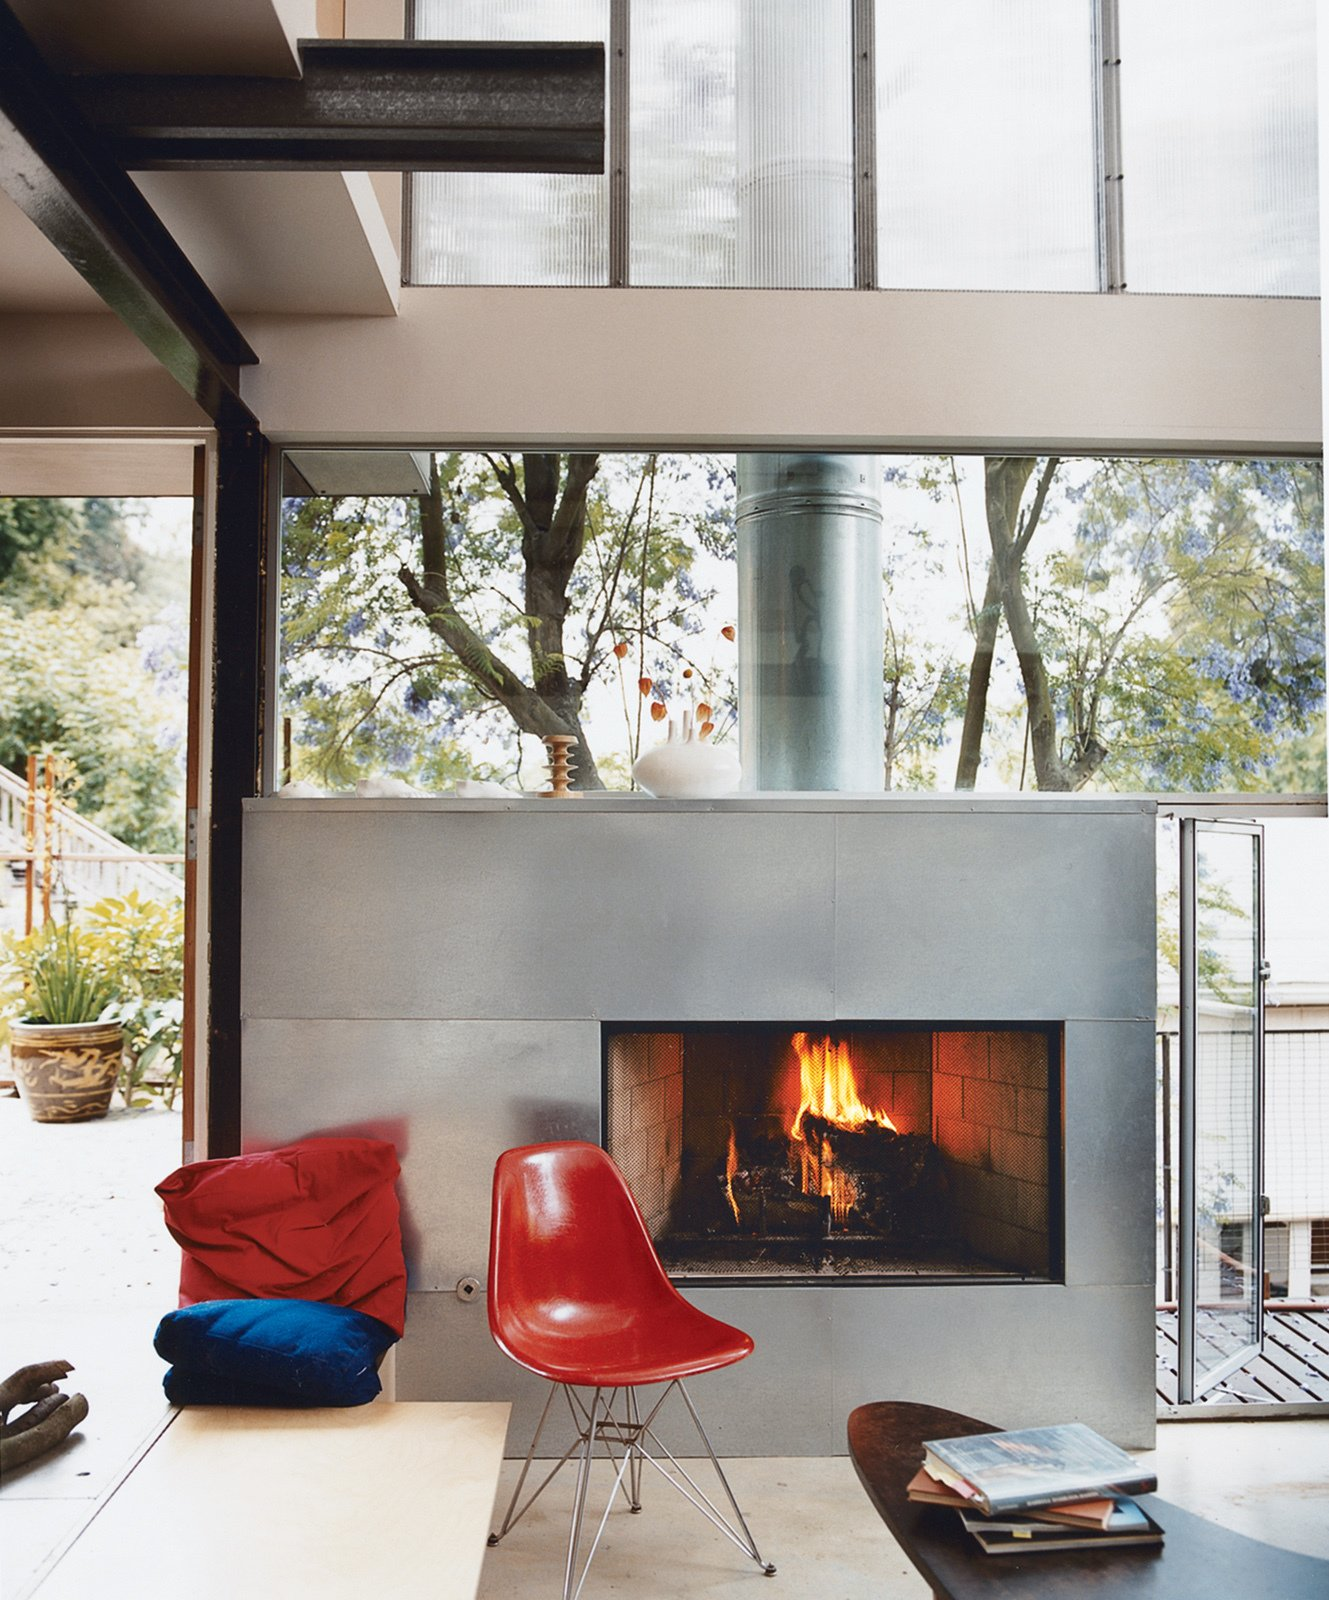 #fireplace #modern #steel #aluminum #Eames #AliceFung #MichaelBlatt #LosAngeles #California   97+ Modern Fireplace Ideas by Dwell from Eames Molded Chairs